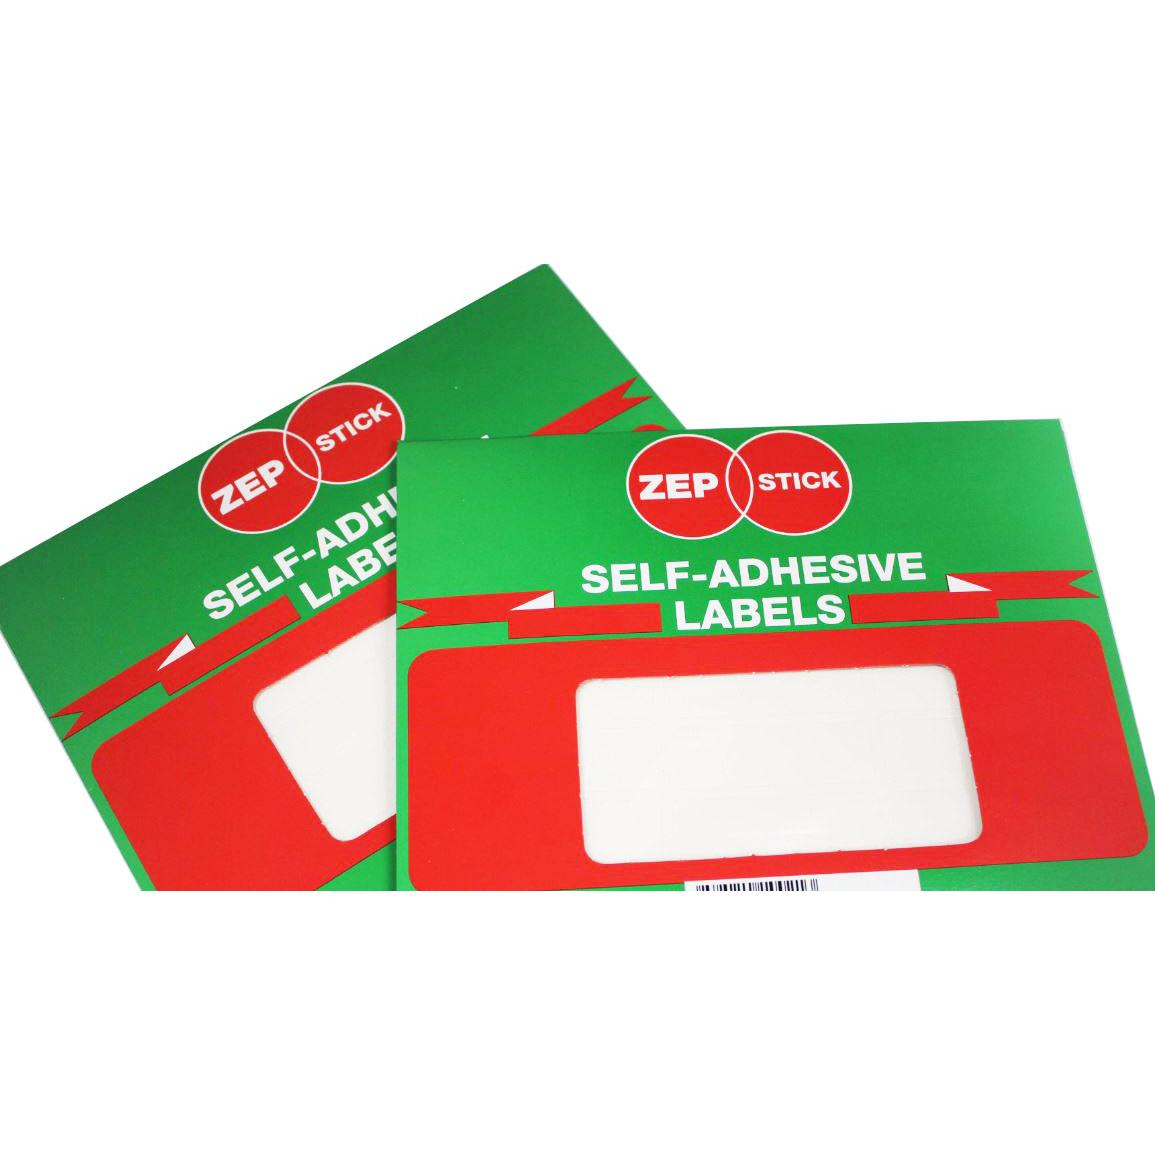 Zepstick Self Adhesive White Labels 19 x 80mm 1980